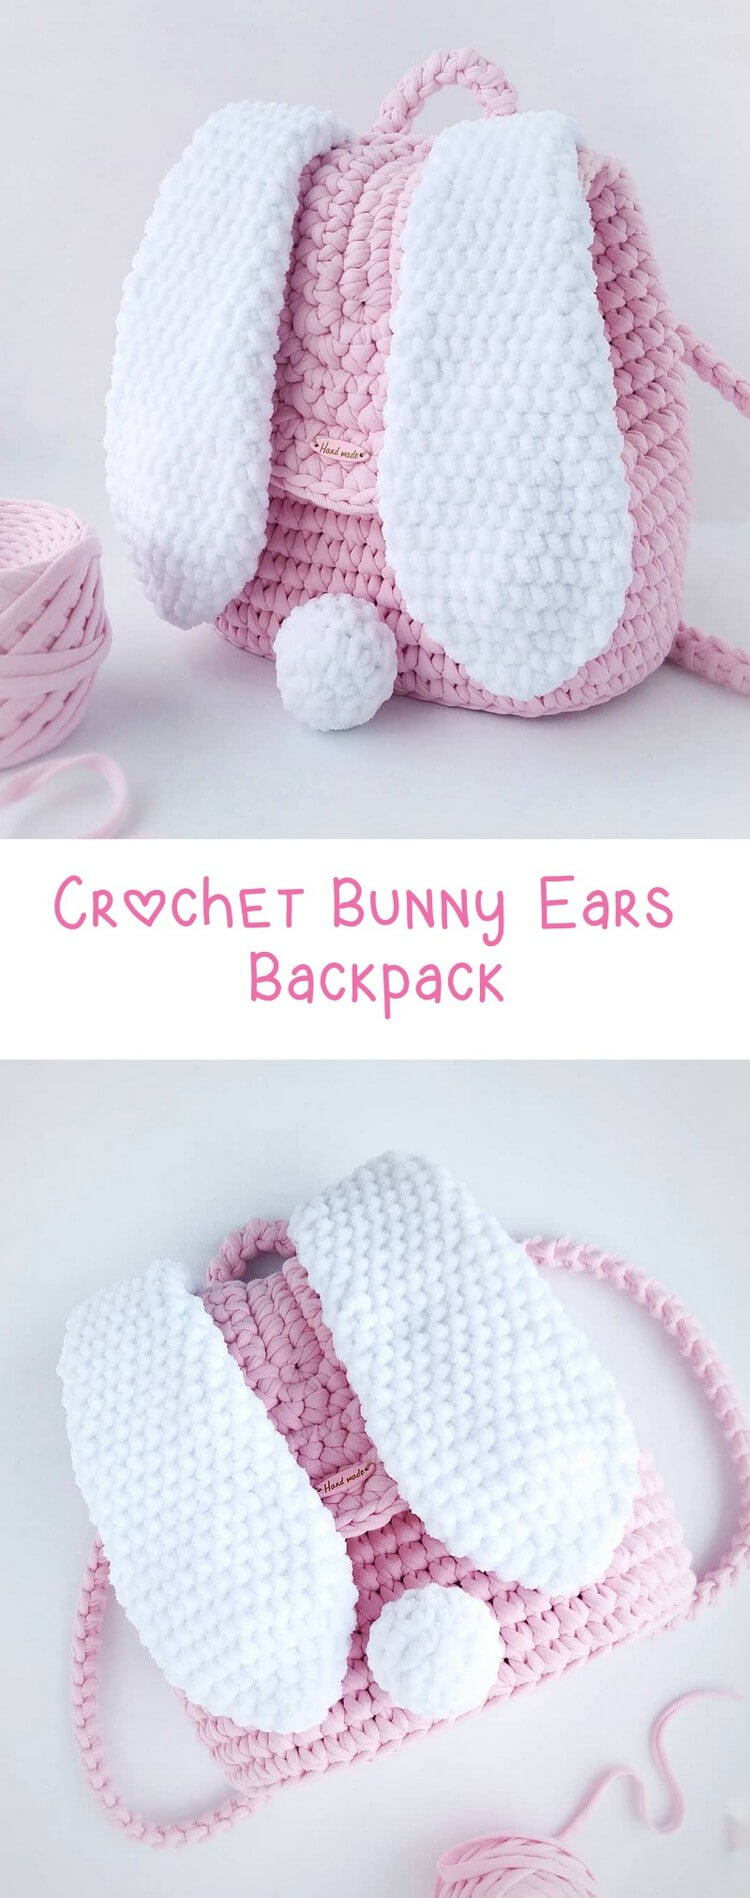 Crochet Backpack Pattern (89)